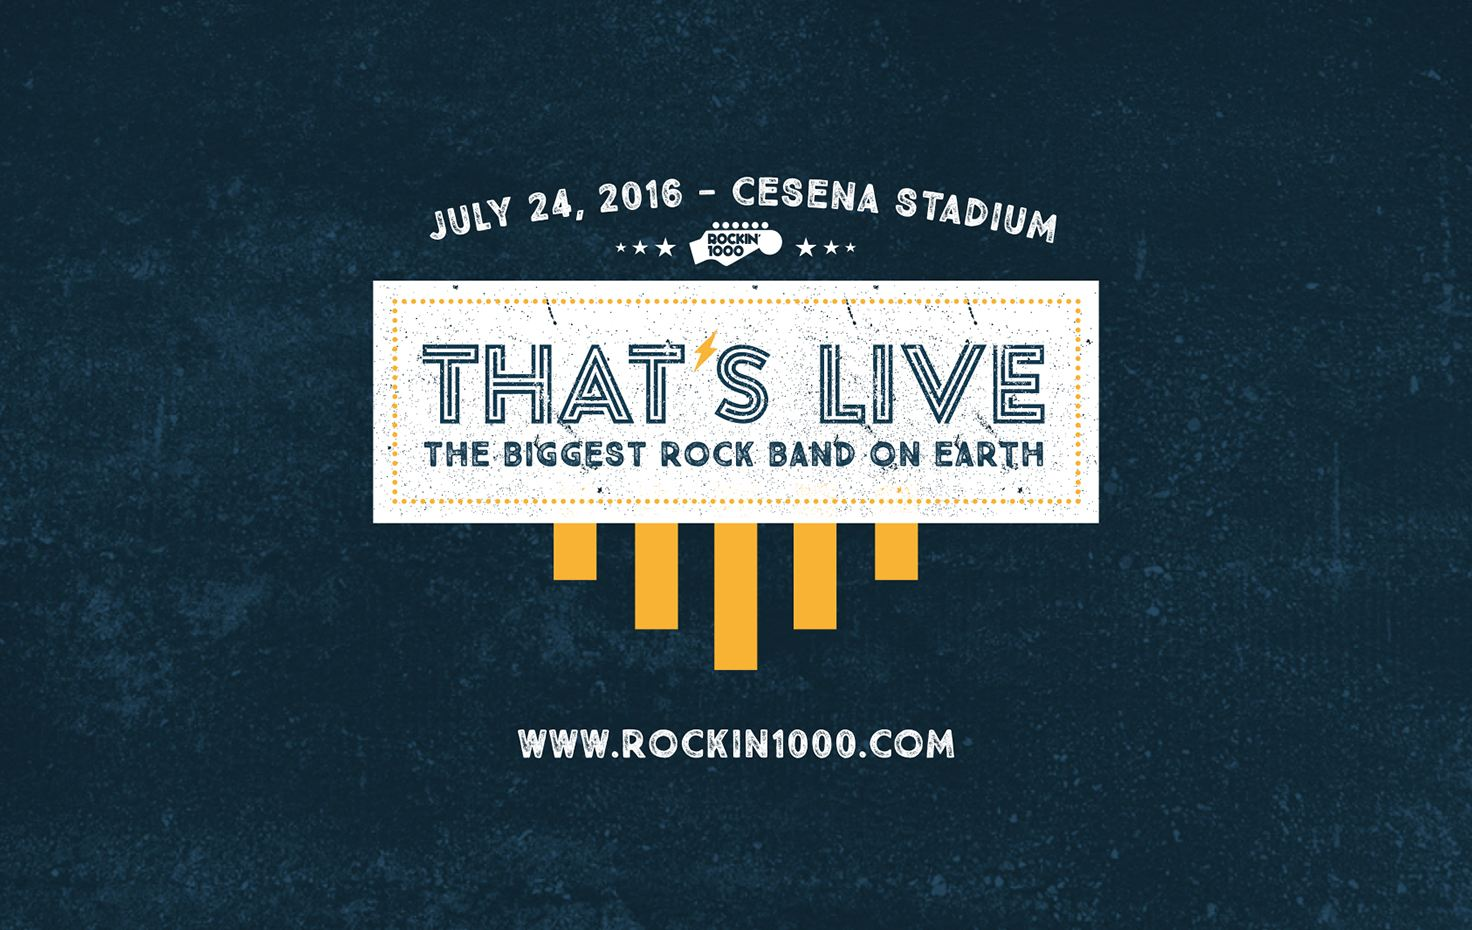 Rockin'1000 That's Live - That's Live -The biggest rock band on earth